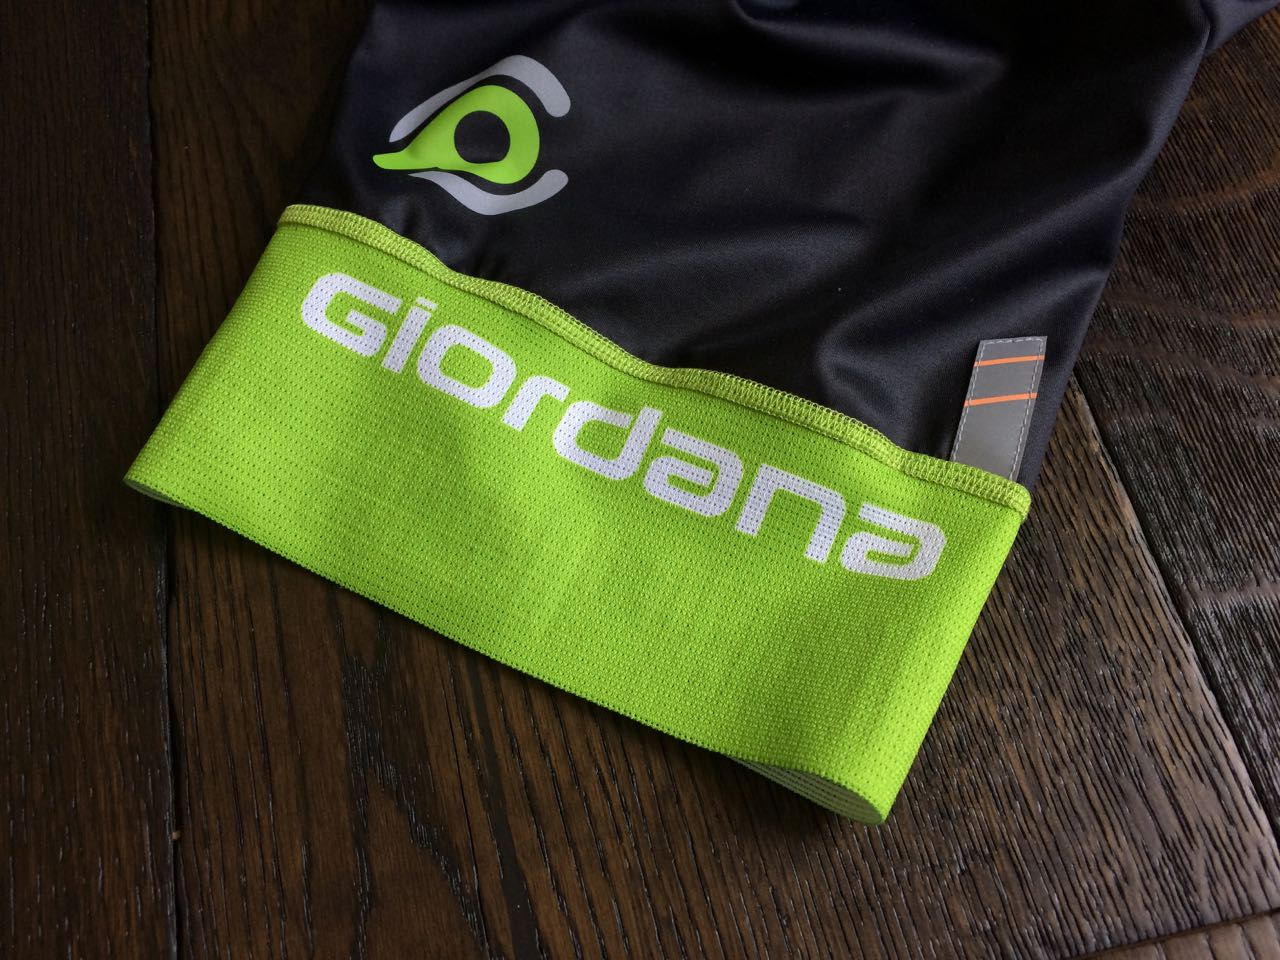 e4dc2fce1 Review  Giordana FR-C Pro Bib Shorts   Jersey - FeedTheHabit.com